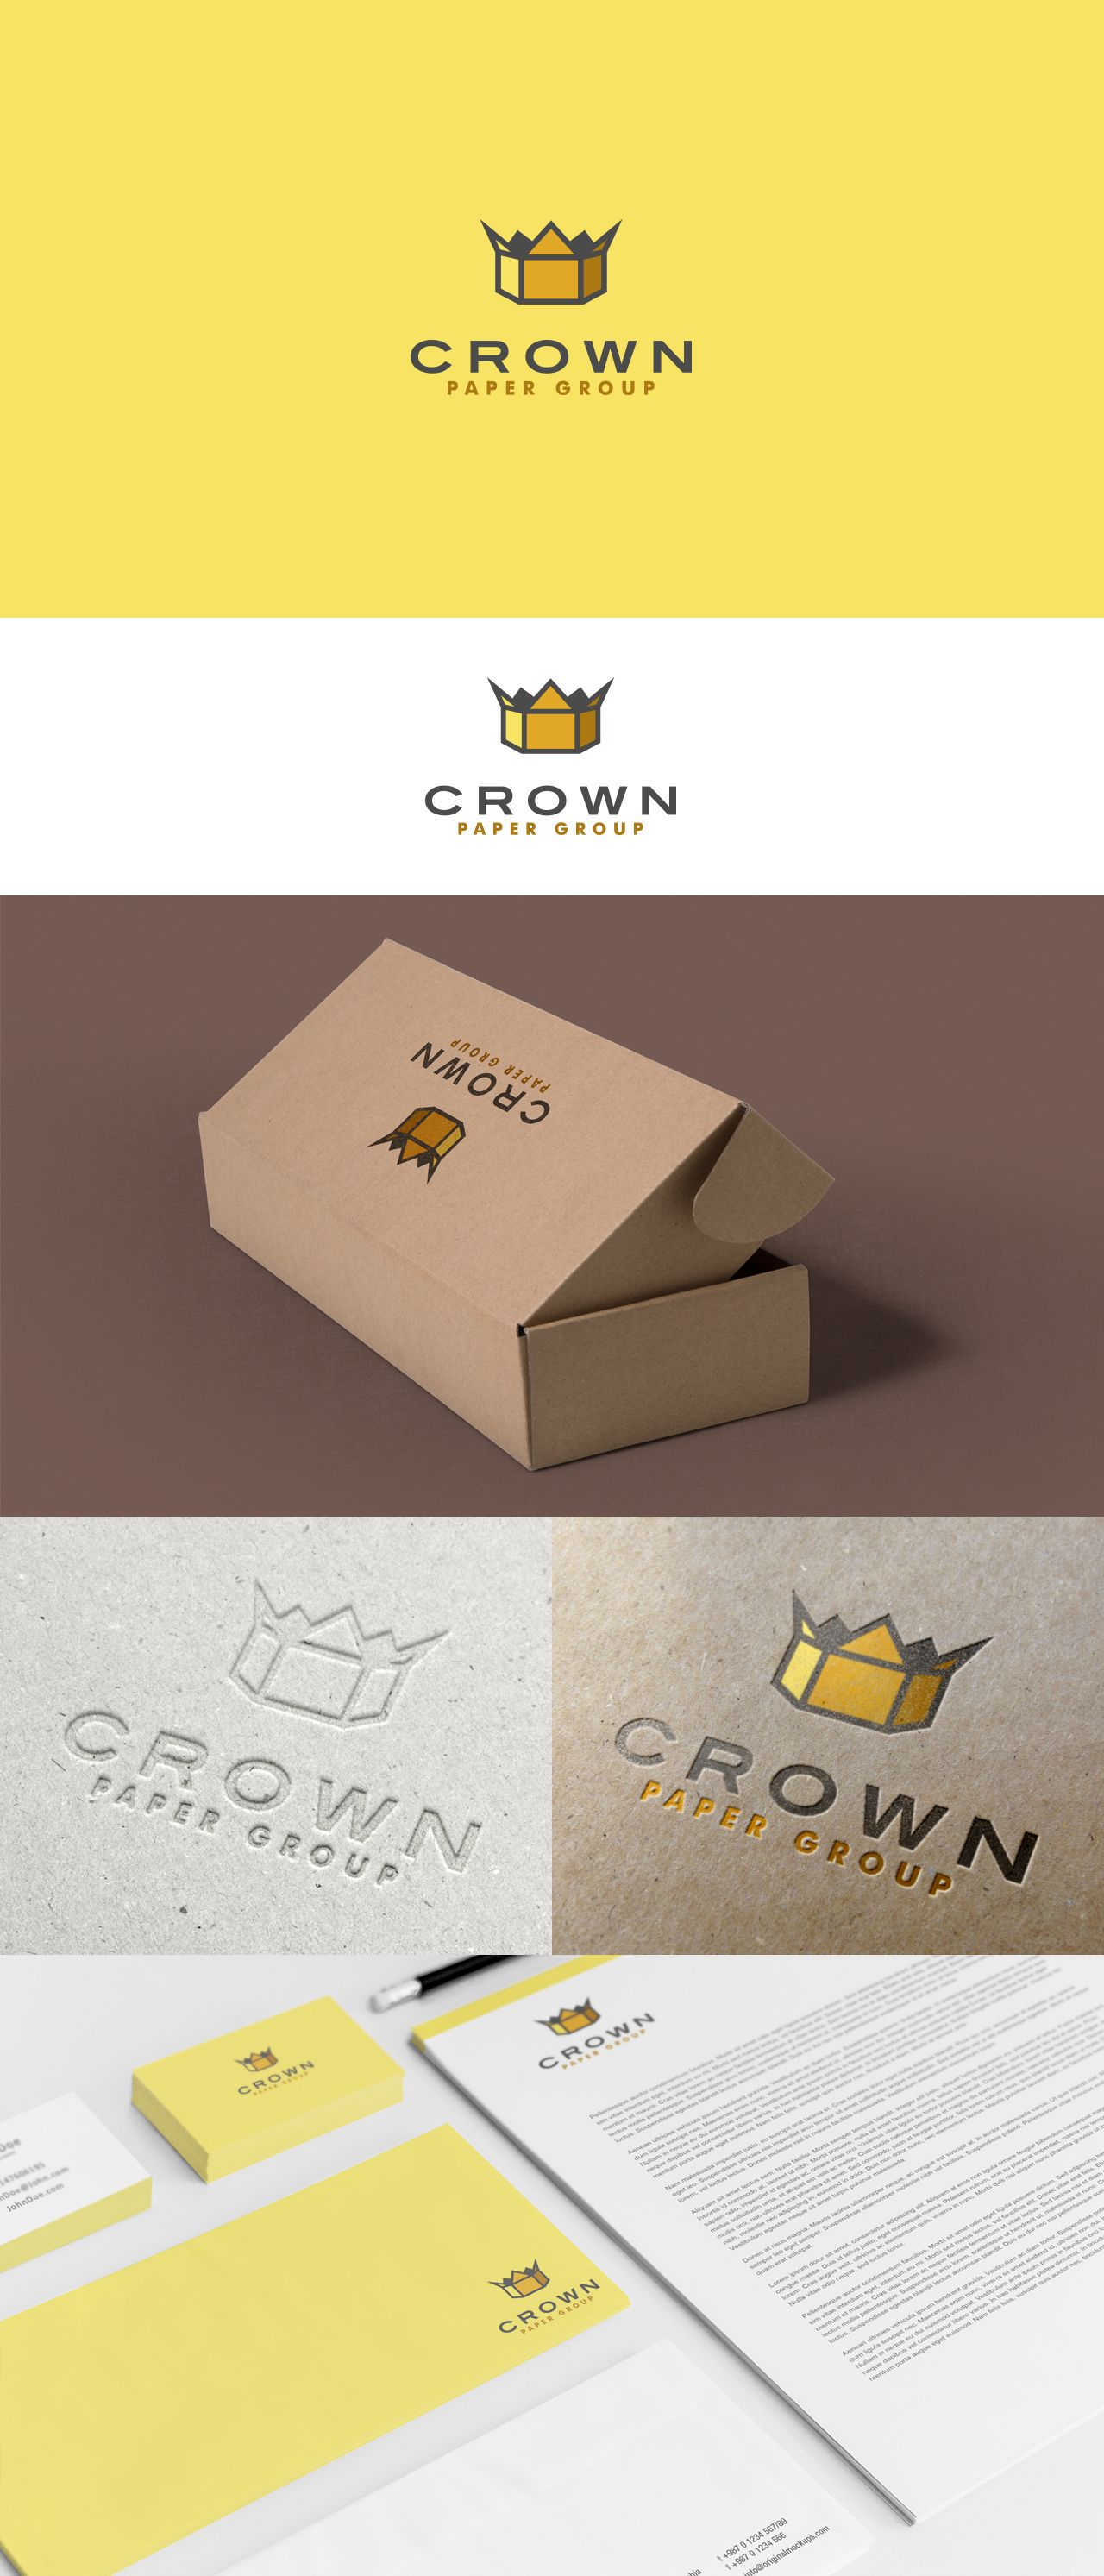 Crown Paper Group Is Comprised Of A Paper Mill That Produces Brown Paper For Use In Cardboard Boxes I Logo Design Graphic Design Logo Creative Graphic Design